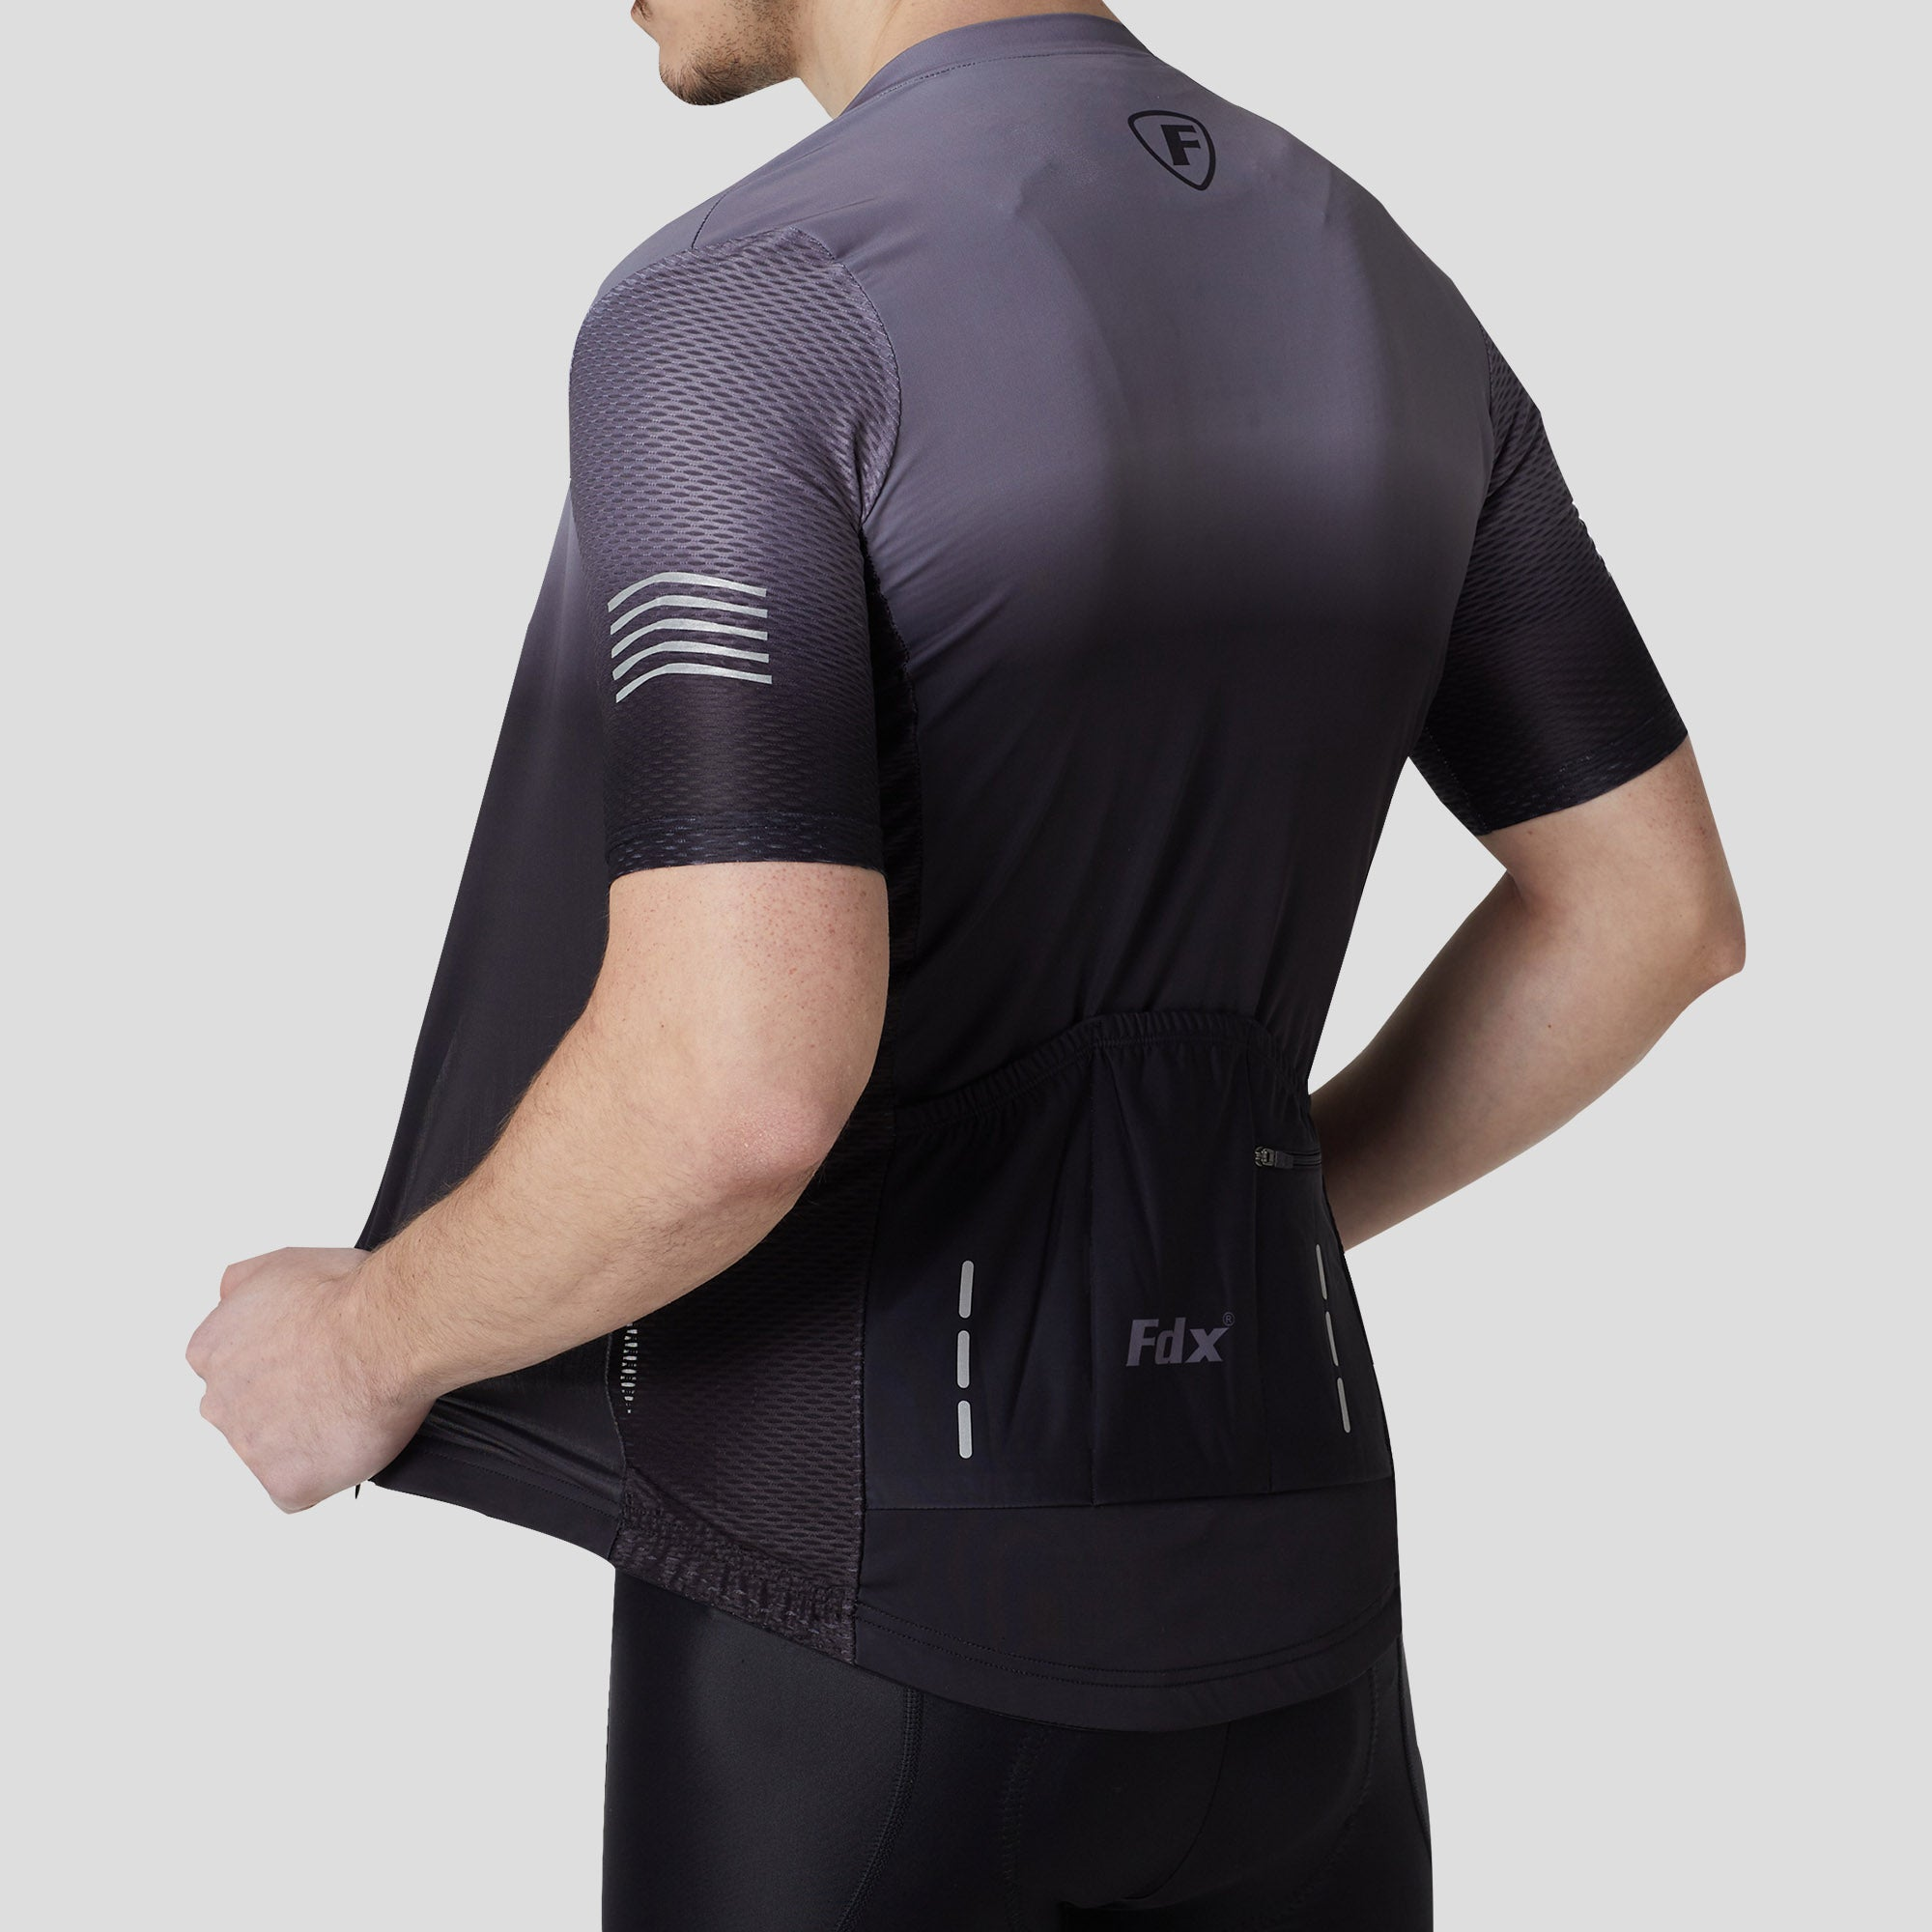 Fdx Duo Men's Grey & Black Short Sleeves Summer Cycling Jersey